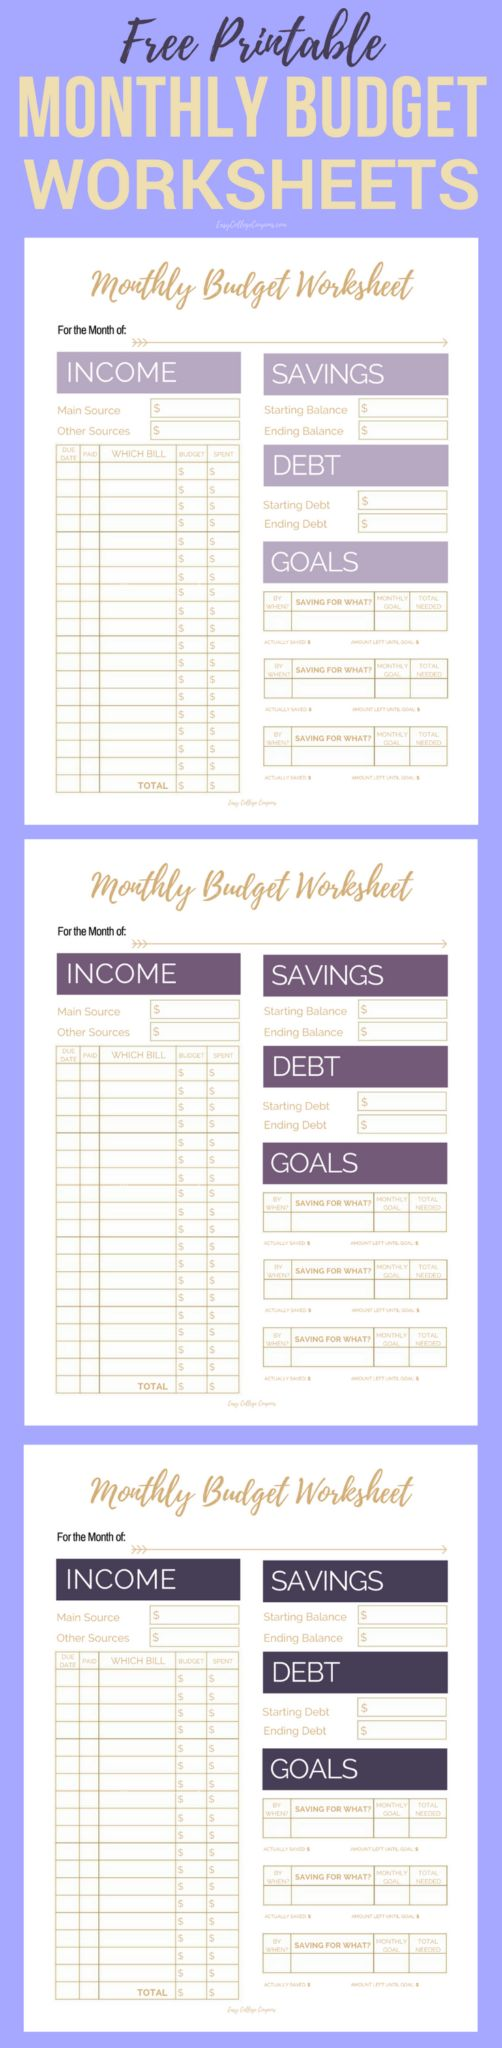 Worksheets College Budget Worksheet college budget template free printable for students students